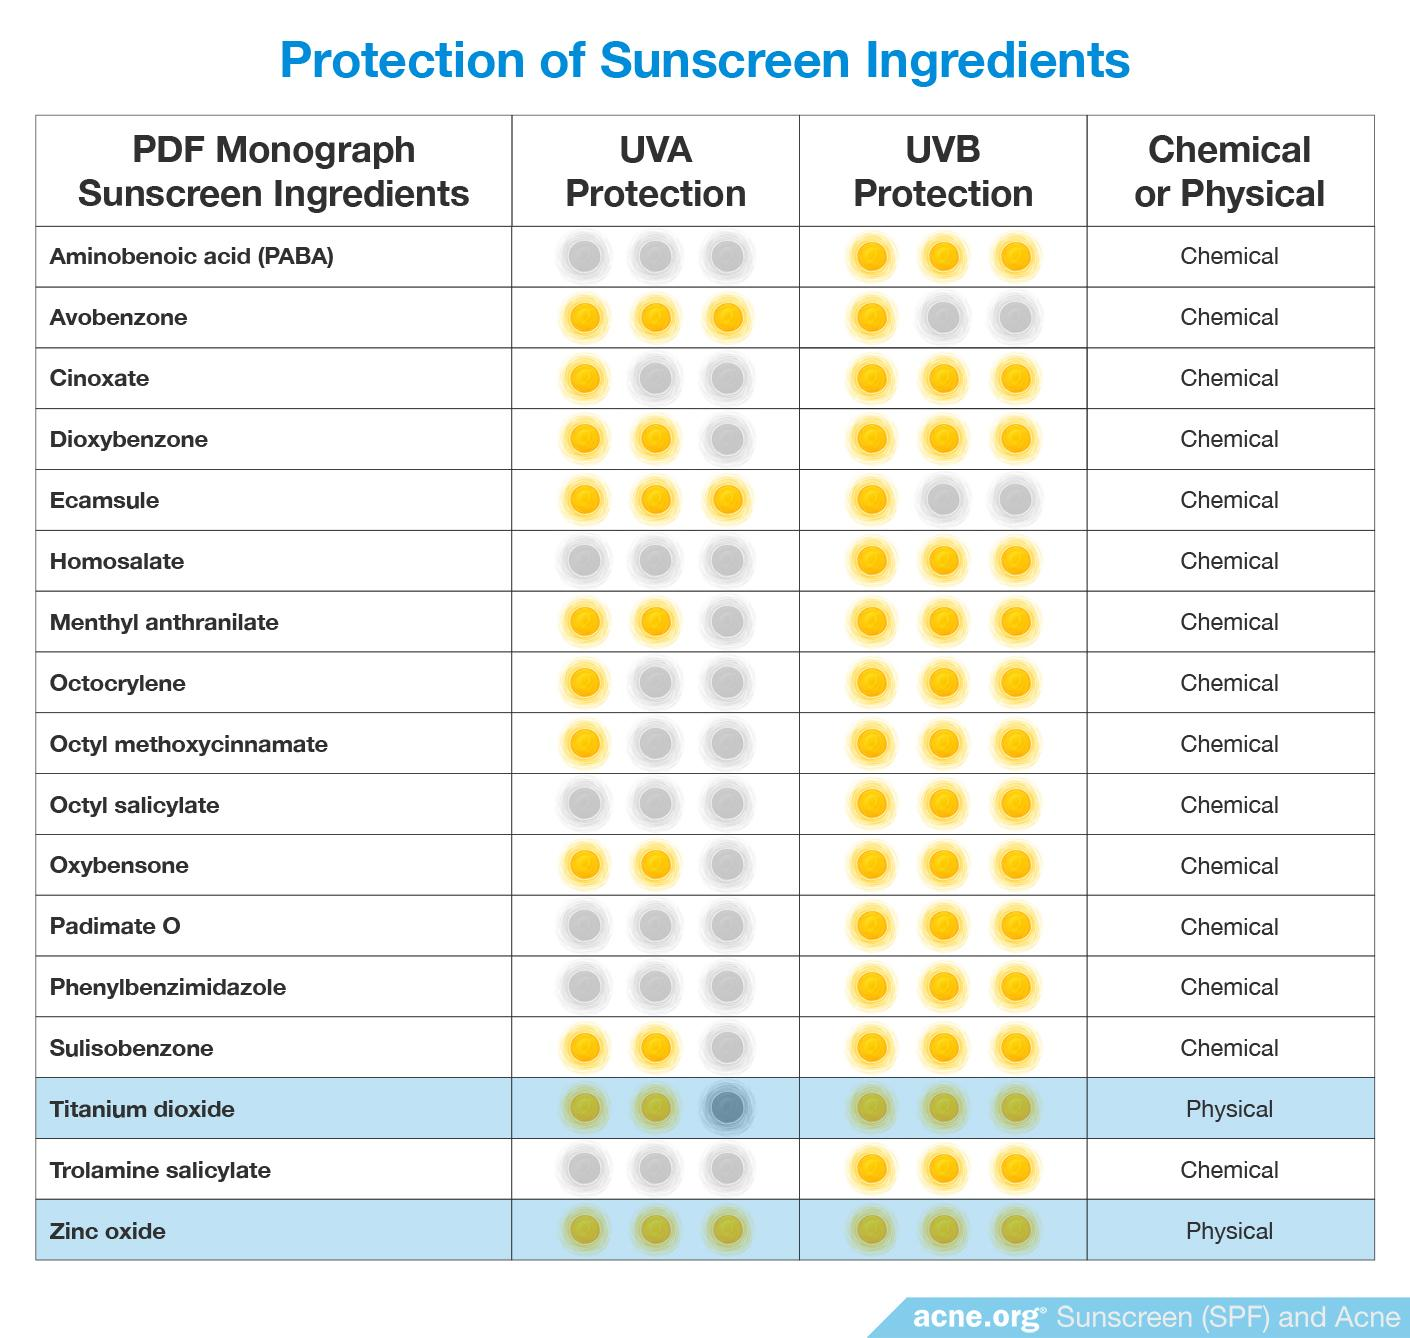 Protection of Sunscreen Ingredients